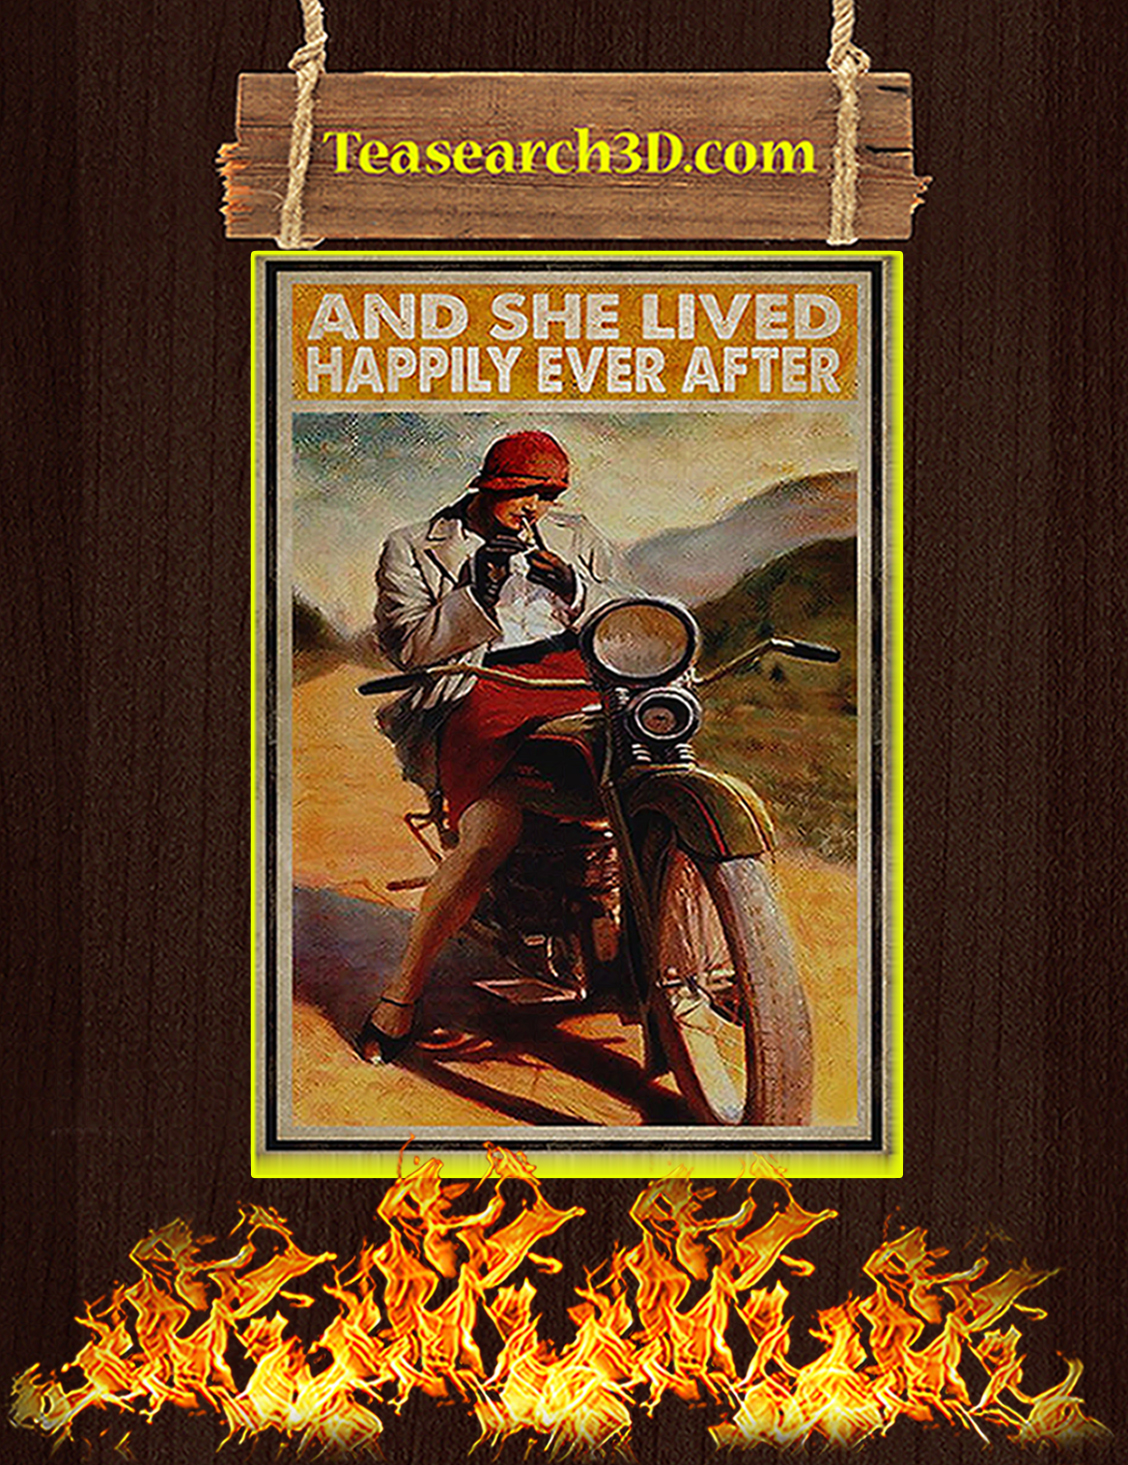 Biker and she lived happily ever after poster A3